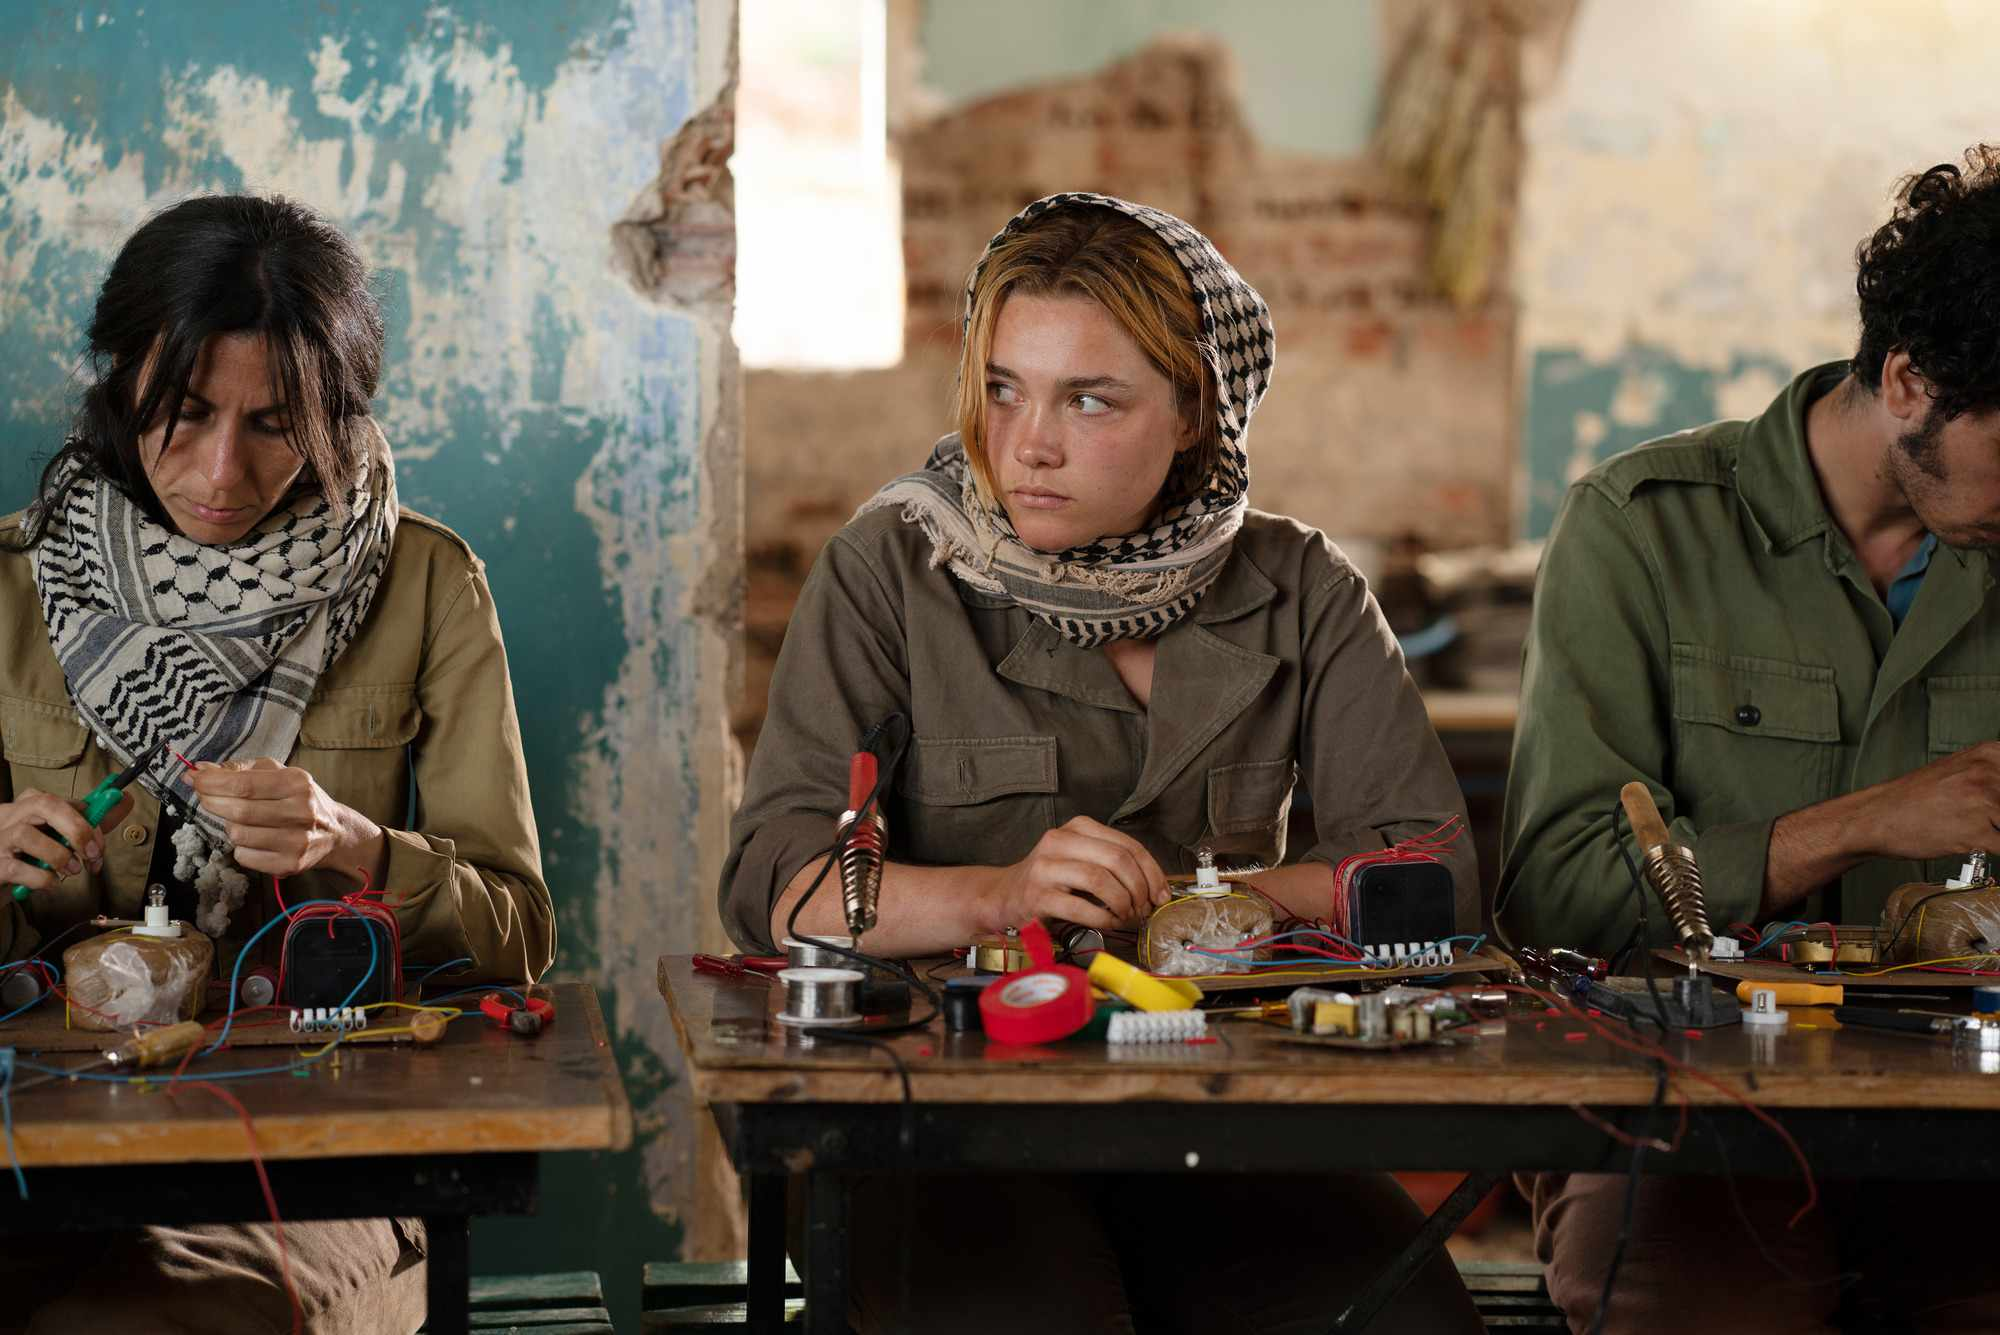 The Little Drummer Girl. (Photo by BBC/The Little Drummer Girl Distribution Limited.)